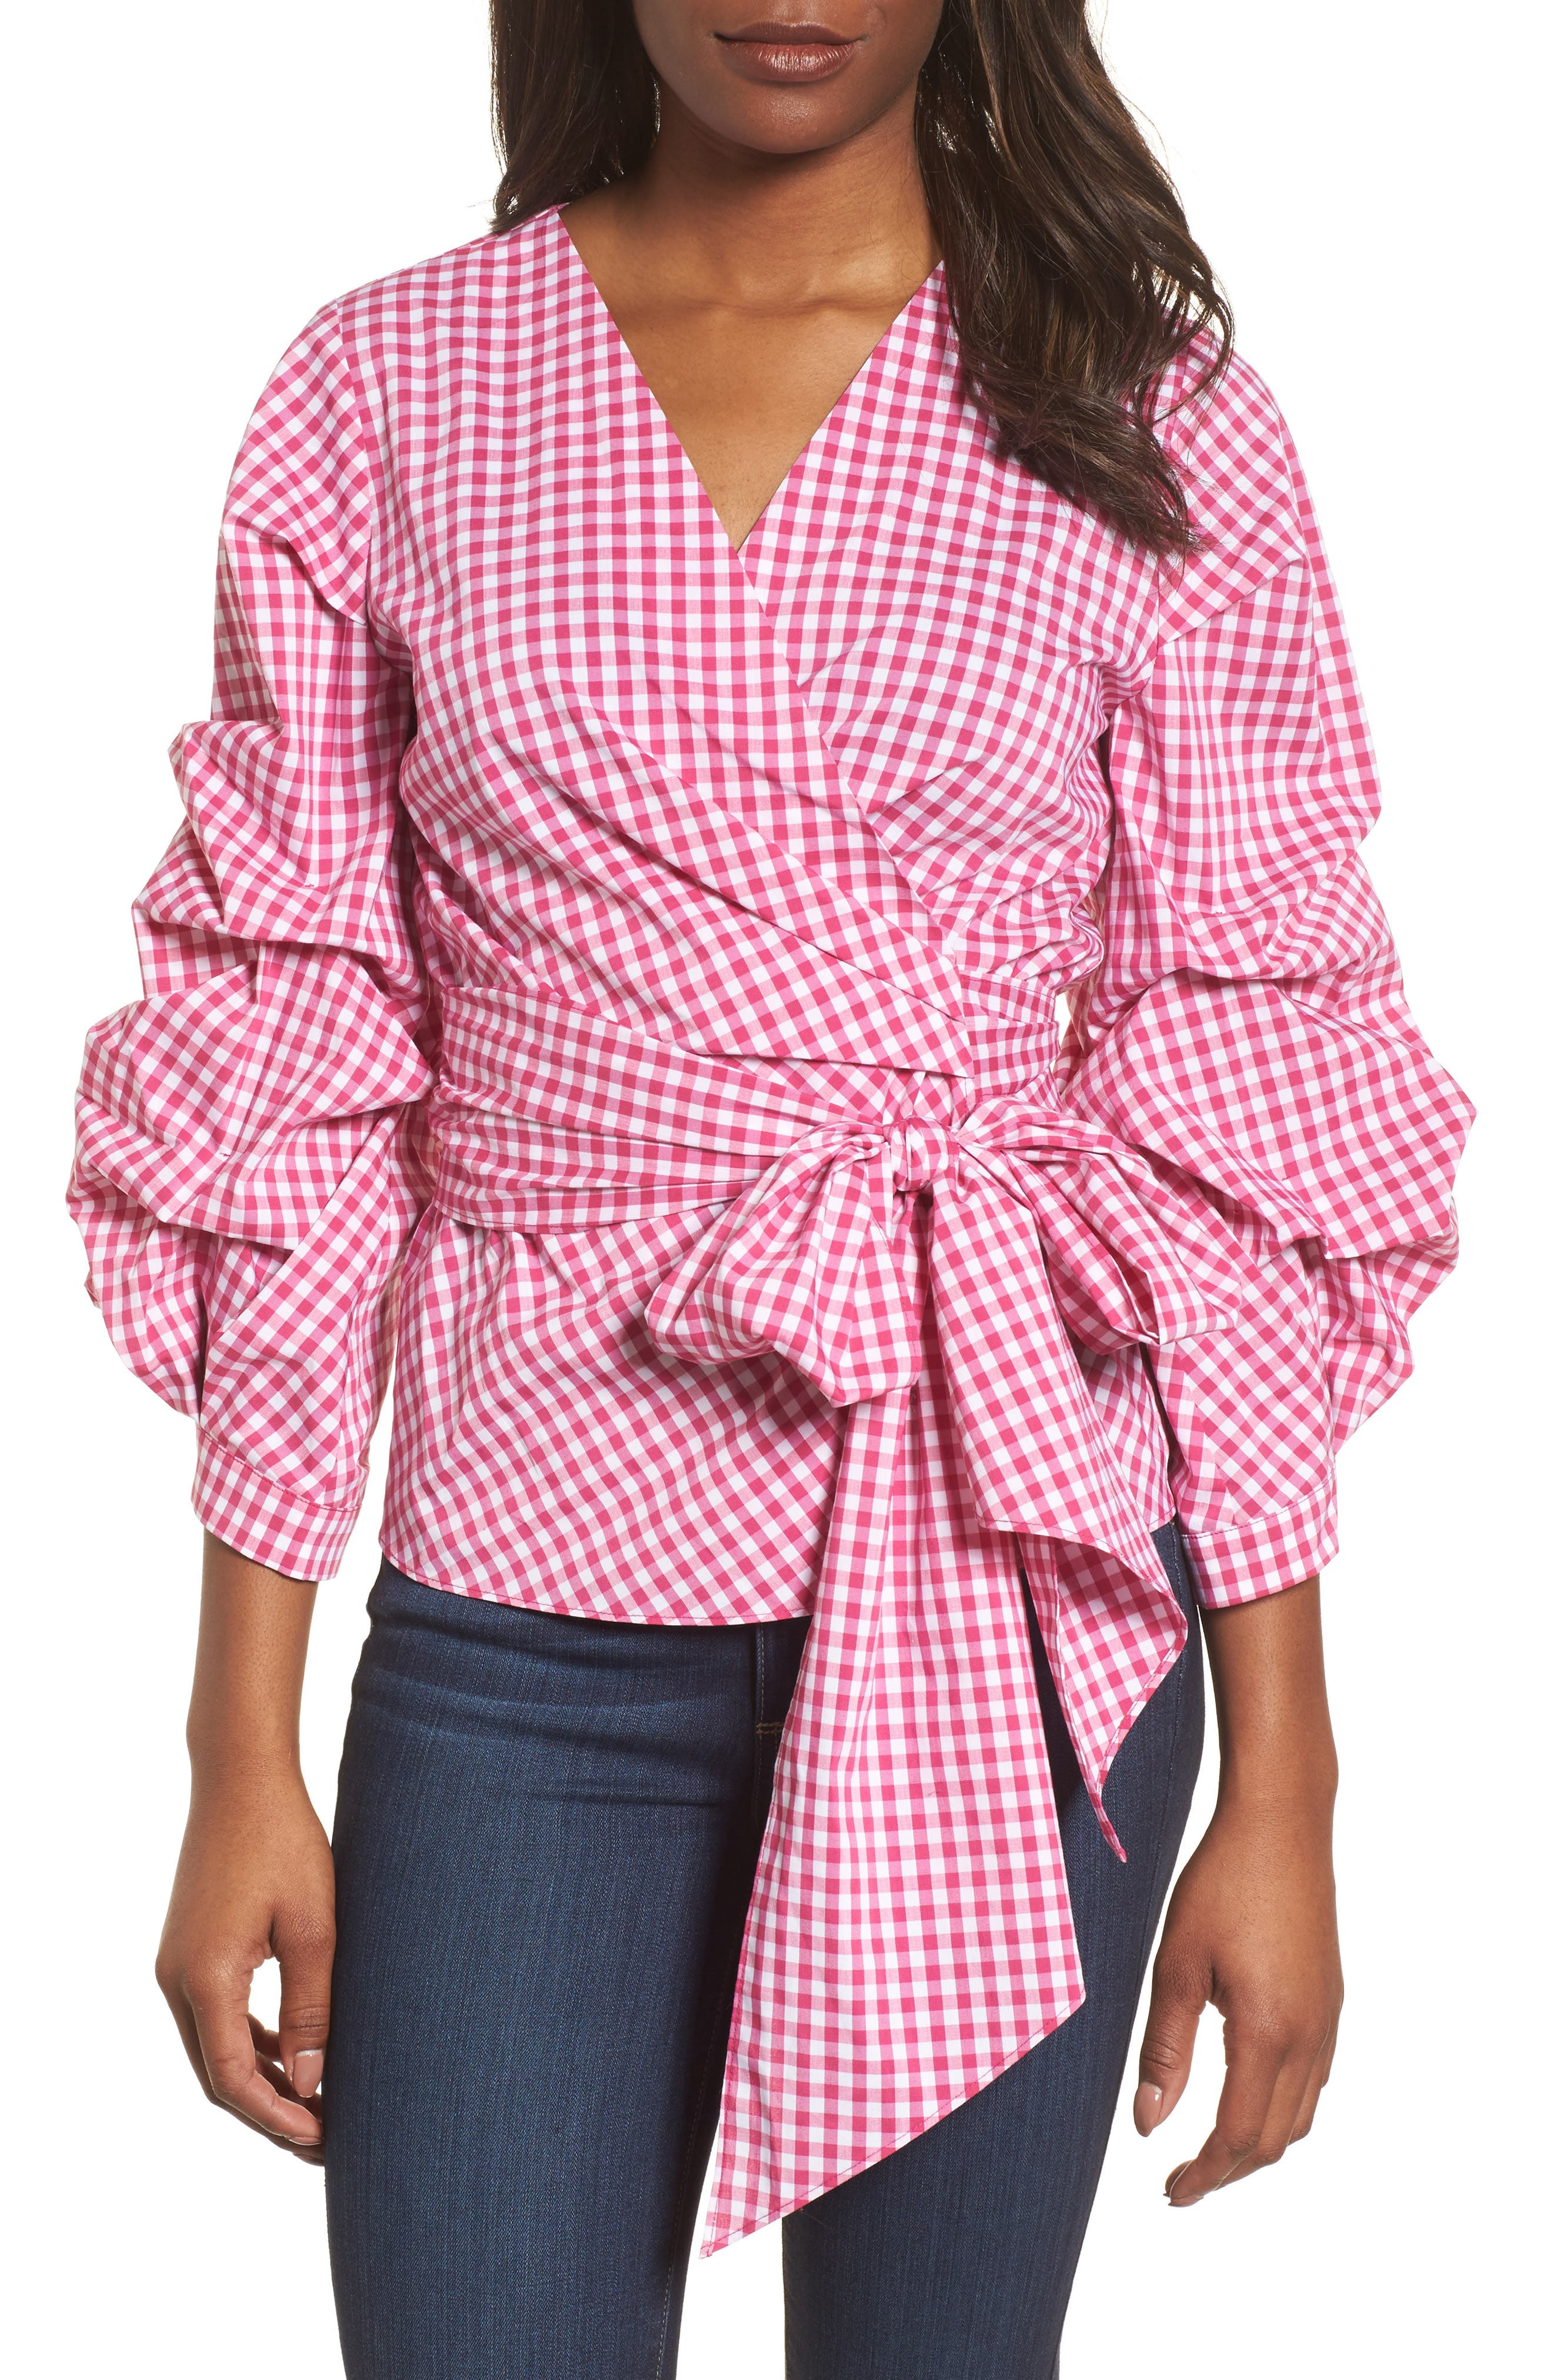 Pintuck Blouson Sleeve Wrap Top,                             Main thumbnail 1, color,                             Pink- White Gingham